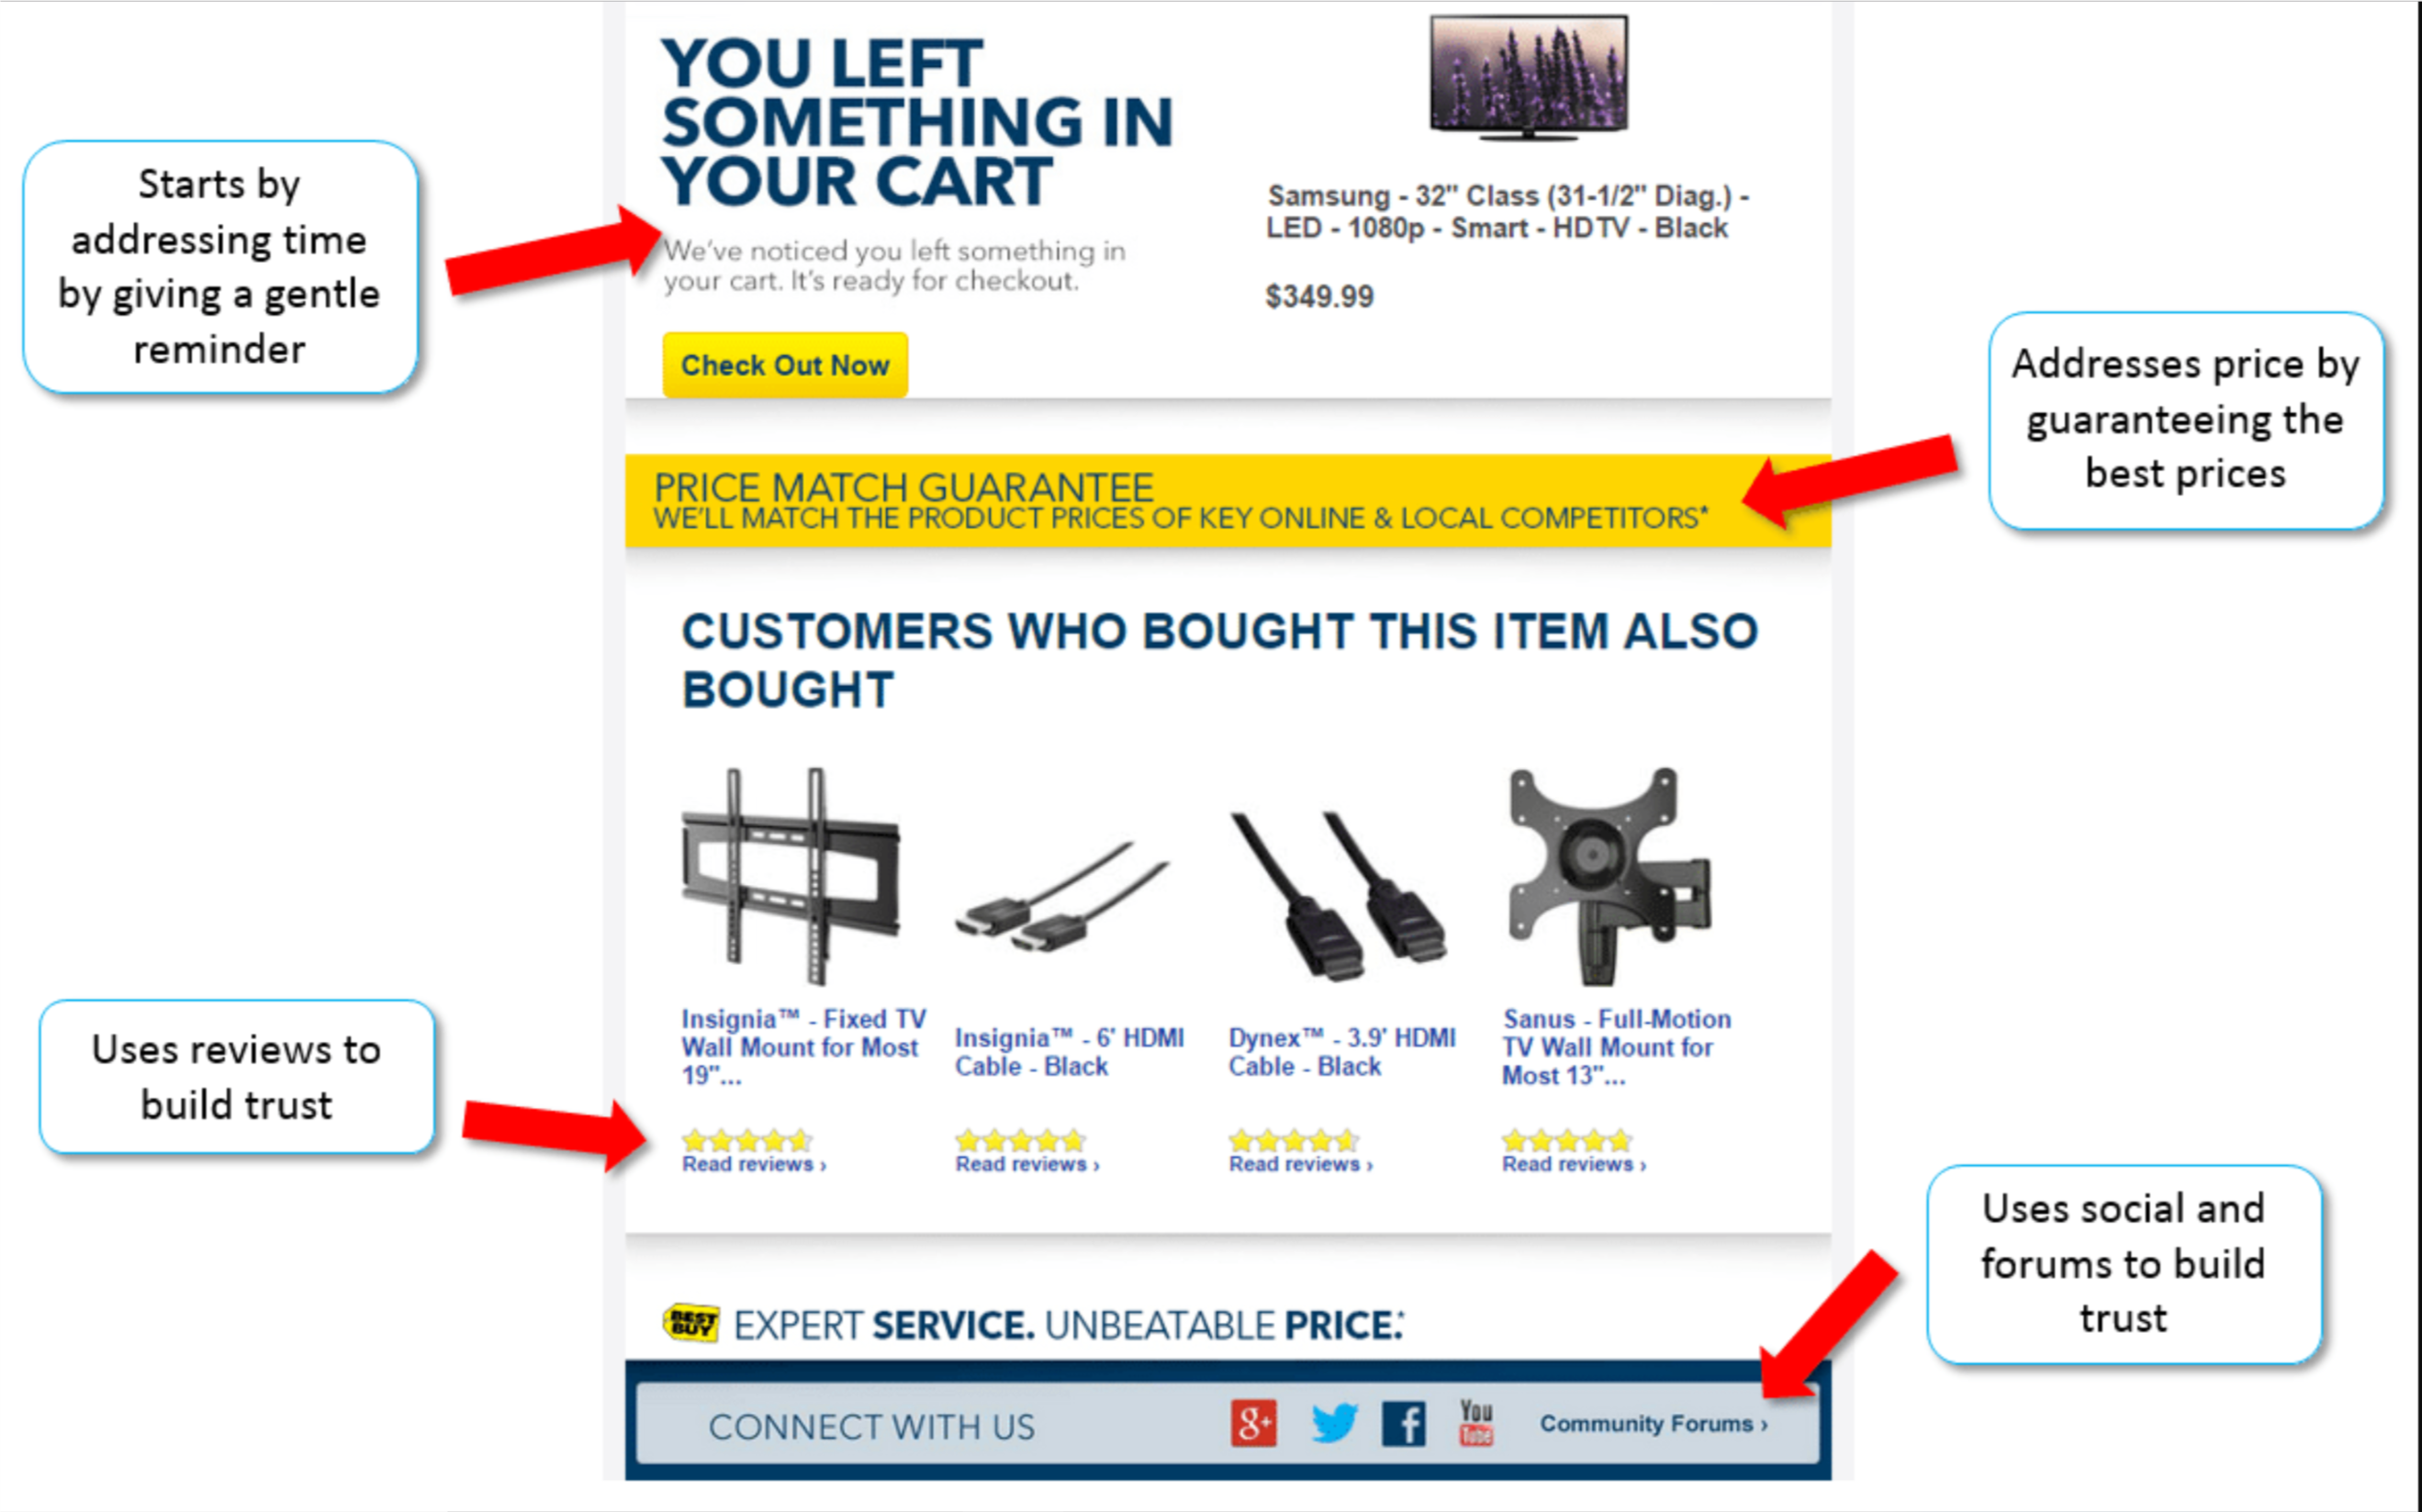 how to improve checkout experience and reduce abandoned carts